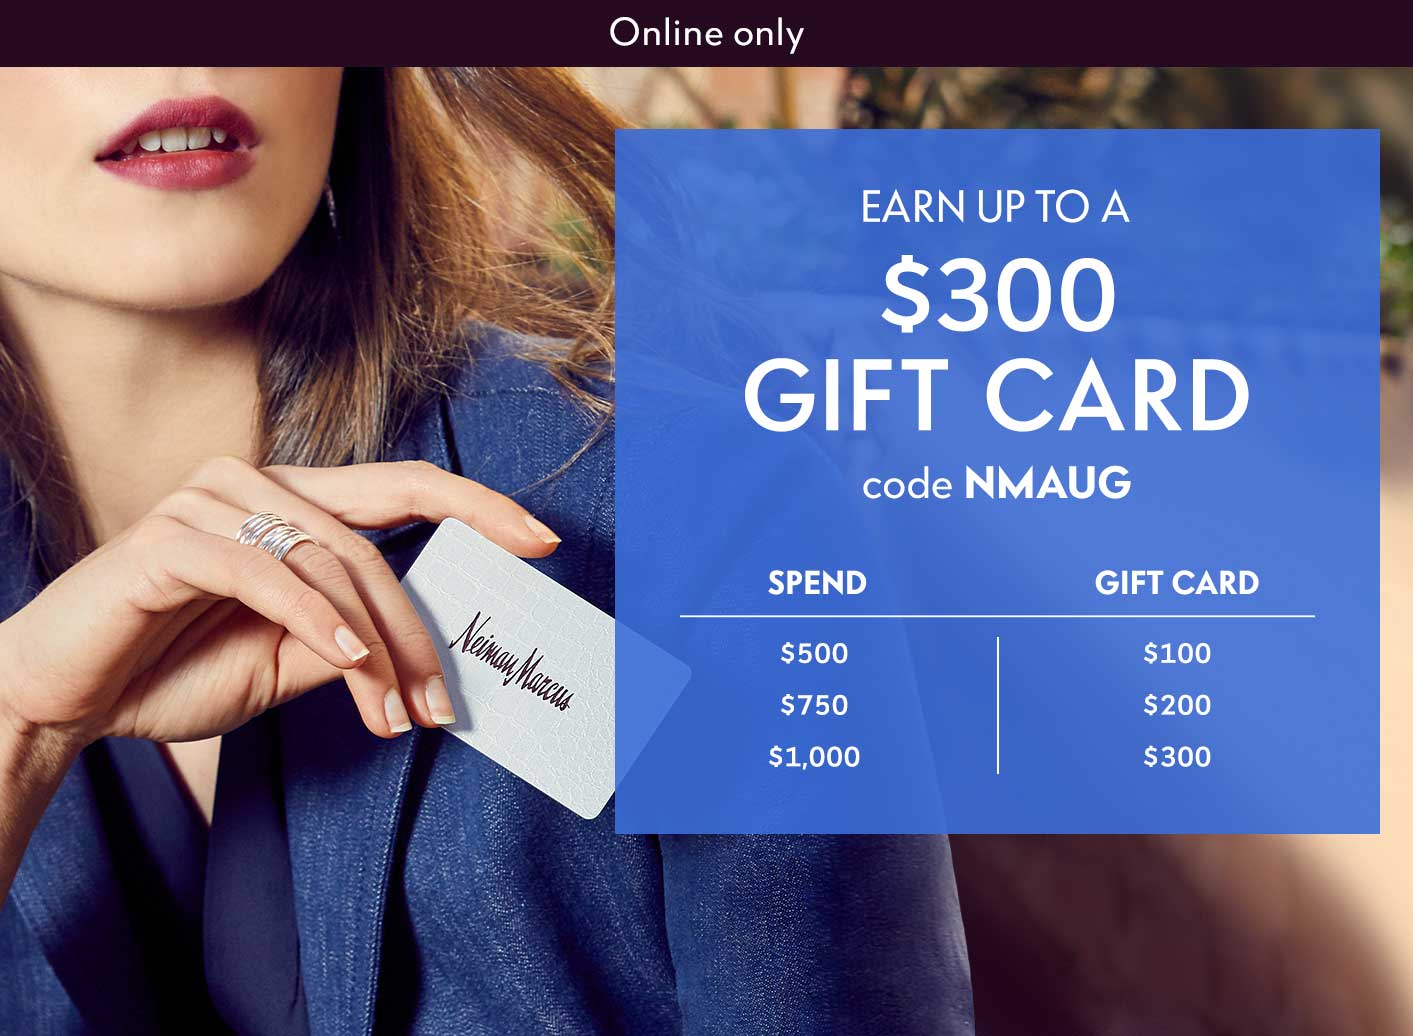 Earn up to a $300 gift card - Code NMAUG